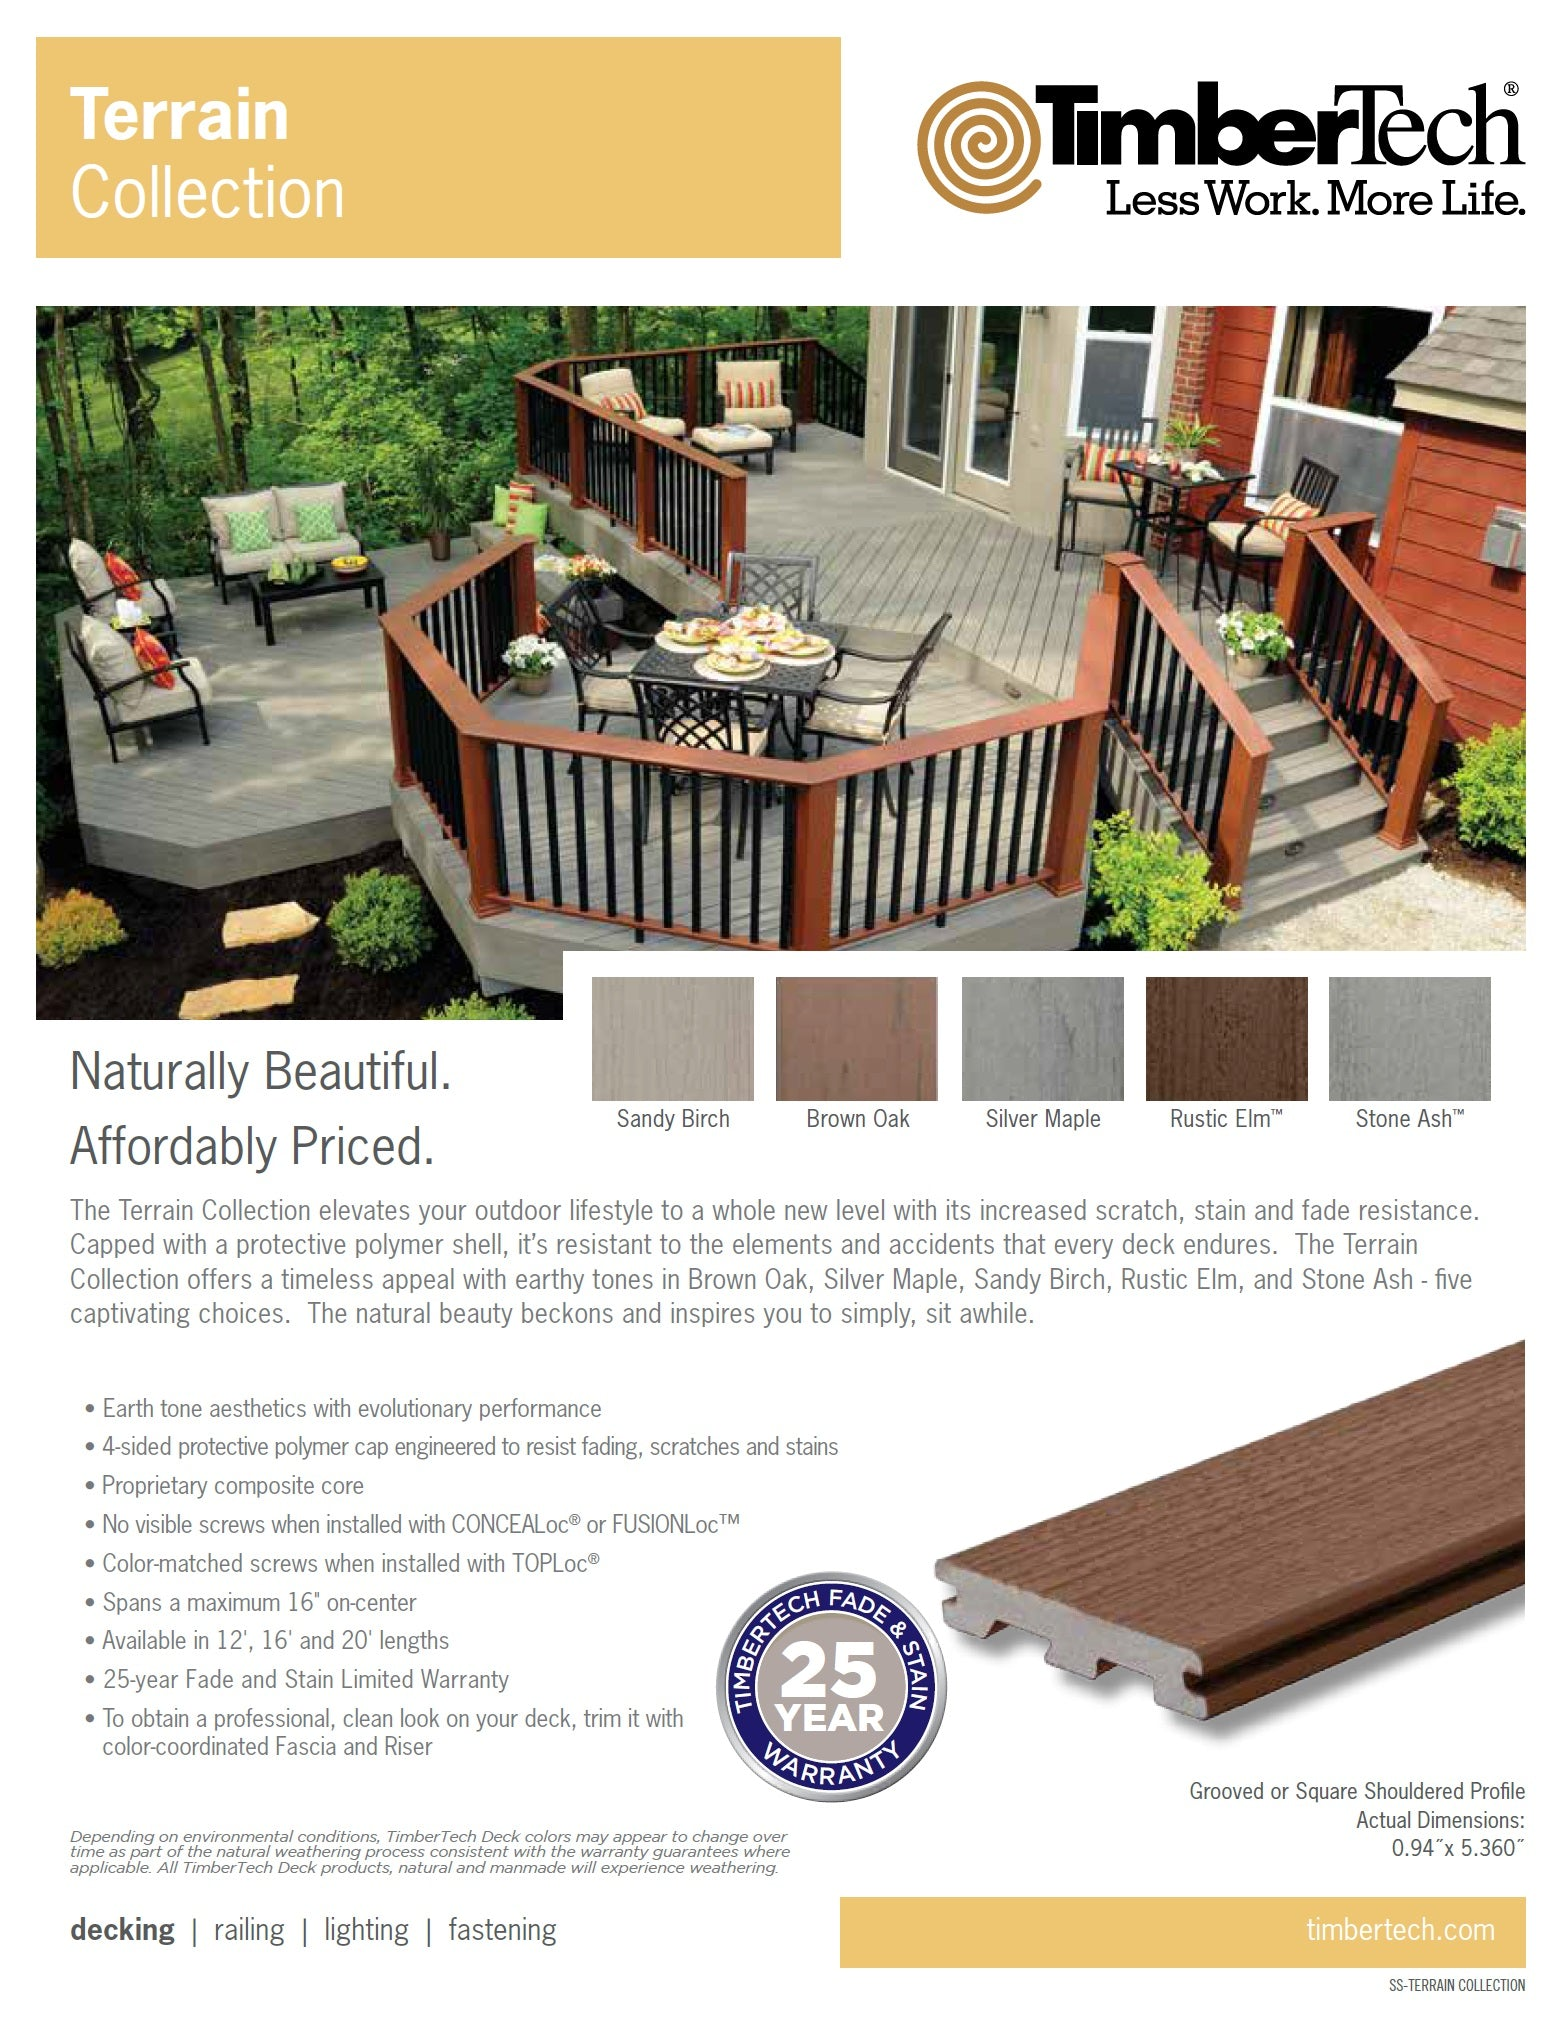 TimberTech Terrain Decking Page, Capped Composite Decking Grooved, Solid, Brown Oak, Silver Maple, Rustic Elm, Sandy Birch, Stone Ash